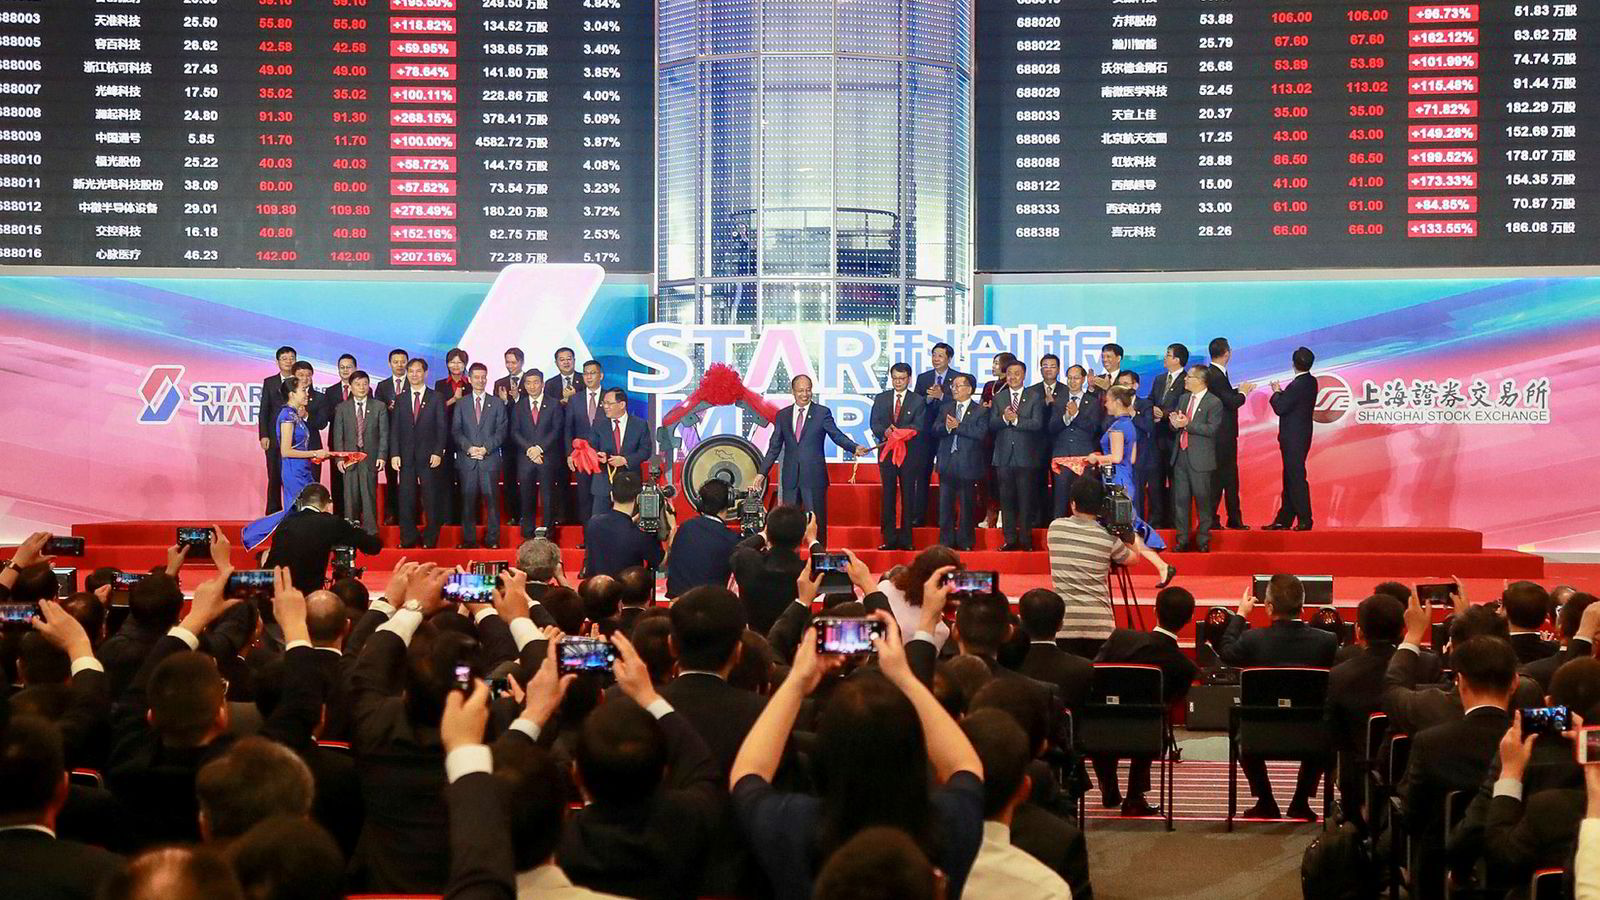 Folk tar bilder under åpningsseremonien av Shanghai Stock Exchange sin nye markedpslass Star Market.